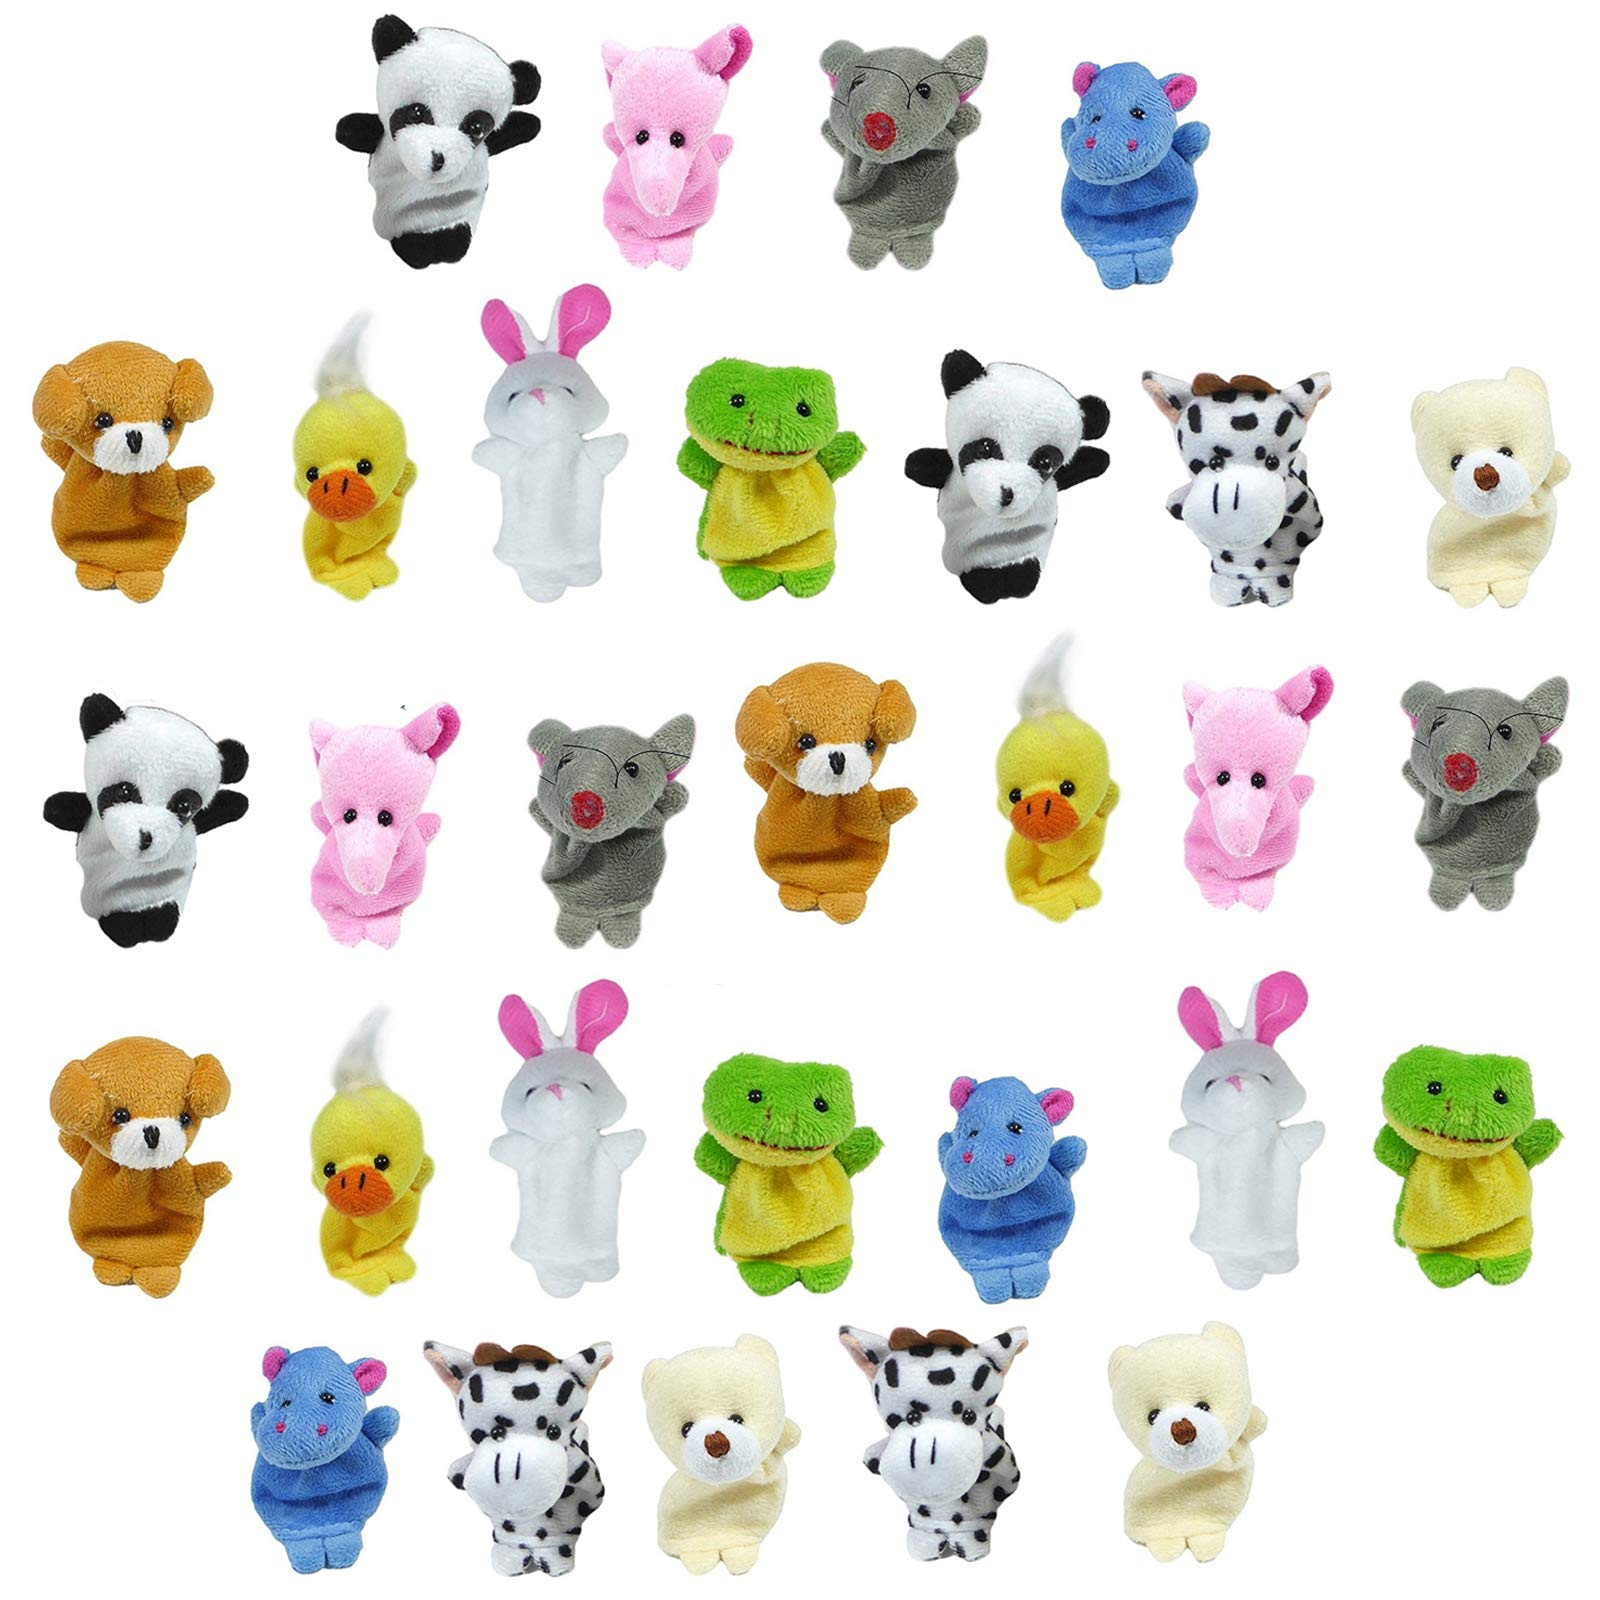 Animal Finger Puppets   Soft Velvet Cute Assorted Animals   Mini Prop Dolls Story Time, Shows, School Playtime   Party Favors, Goodie Bag Fillers   Baby, Children, Kids Educational Toy Set (30 Piece)